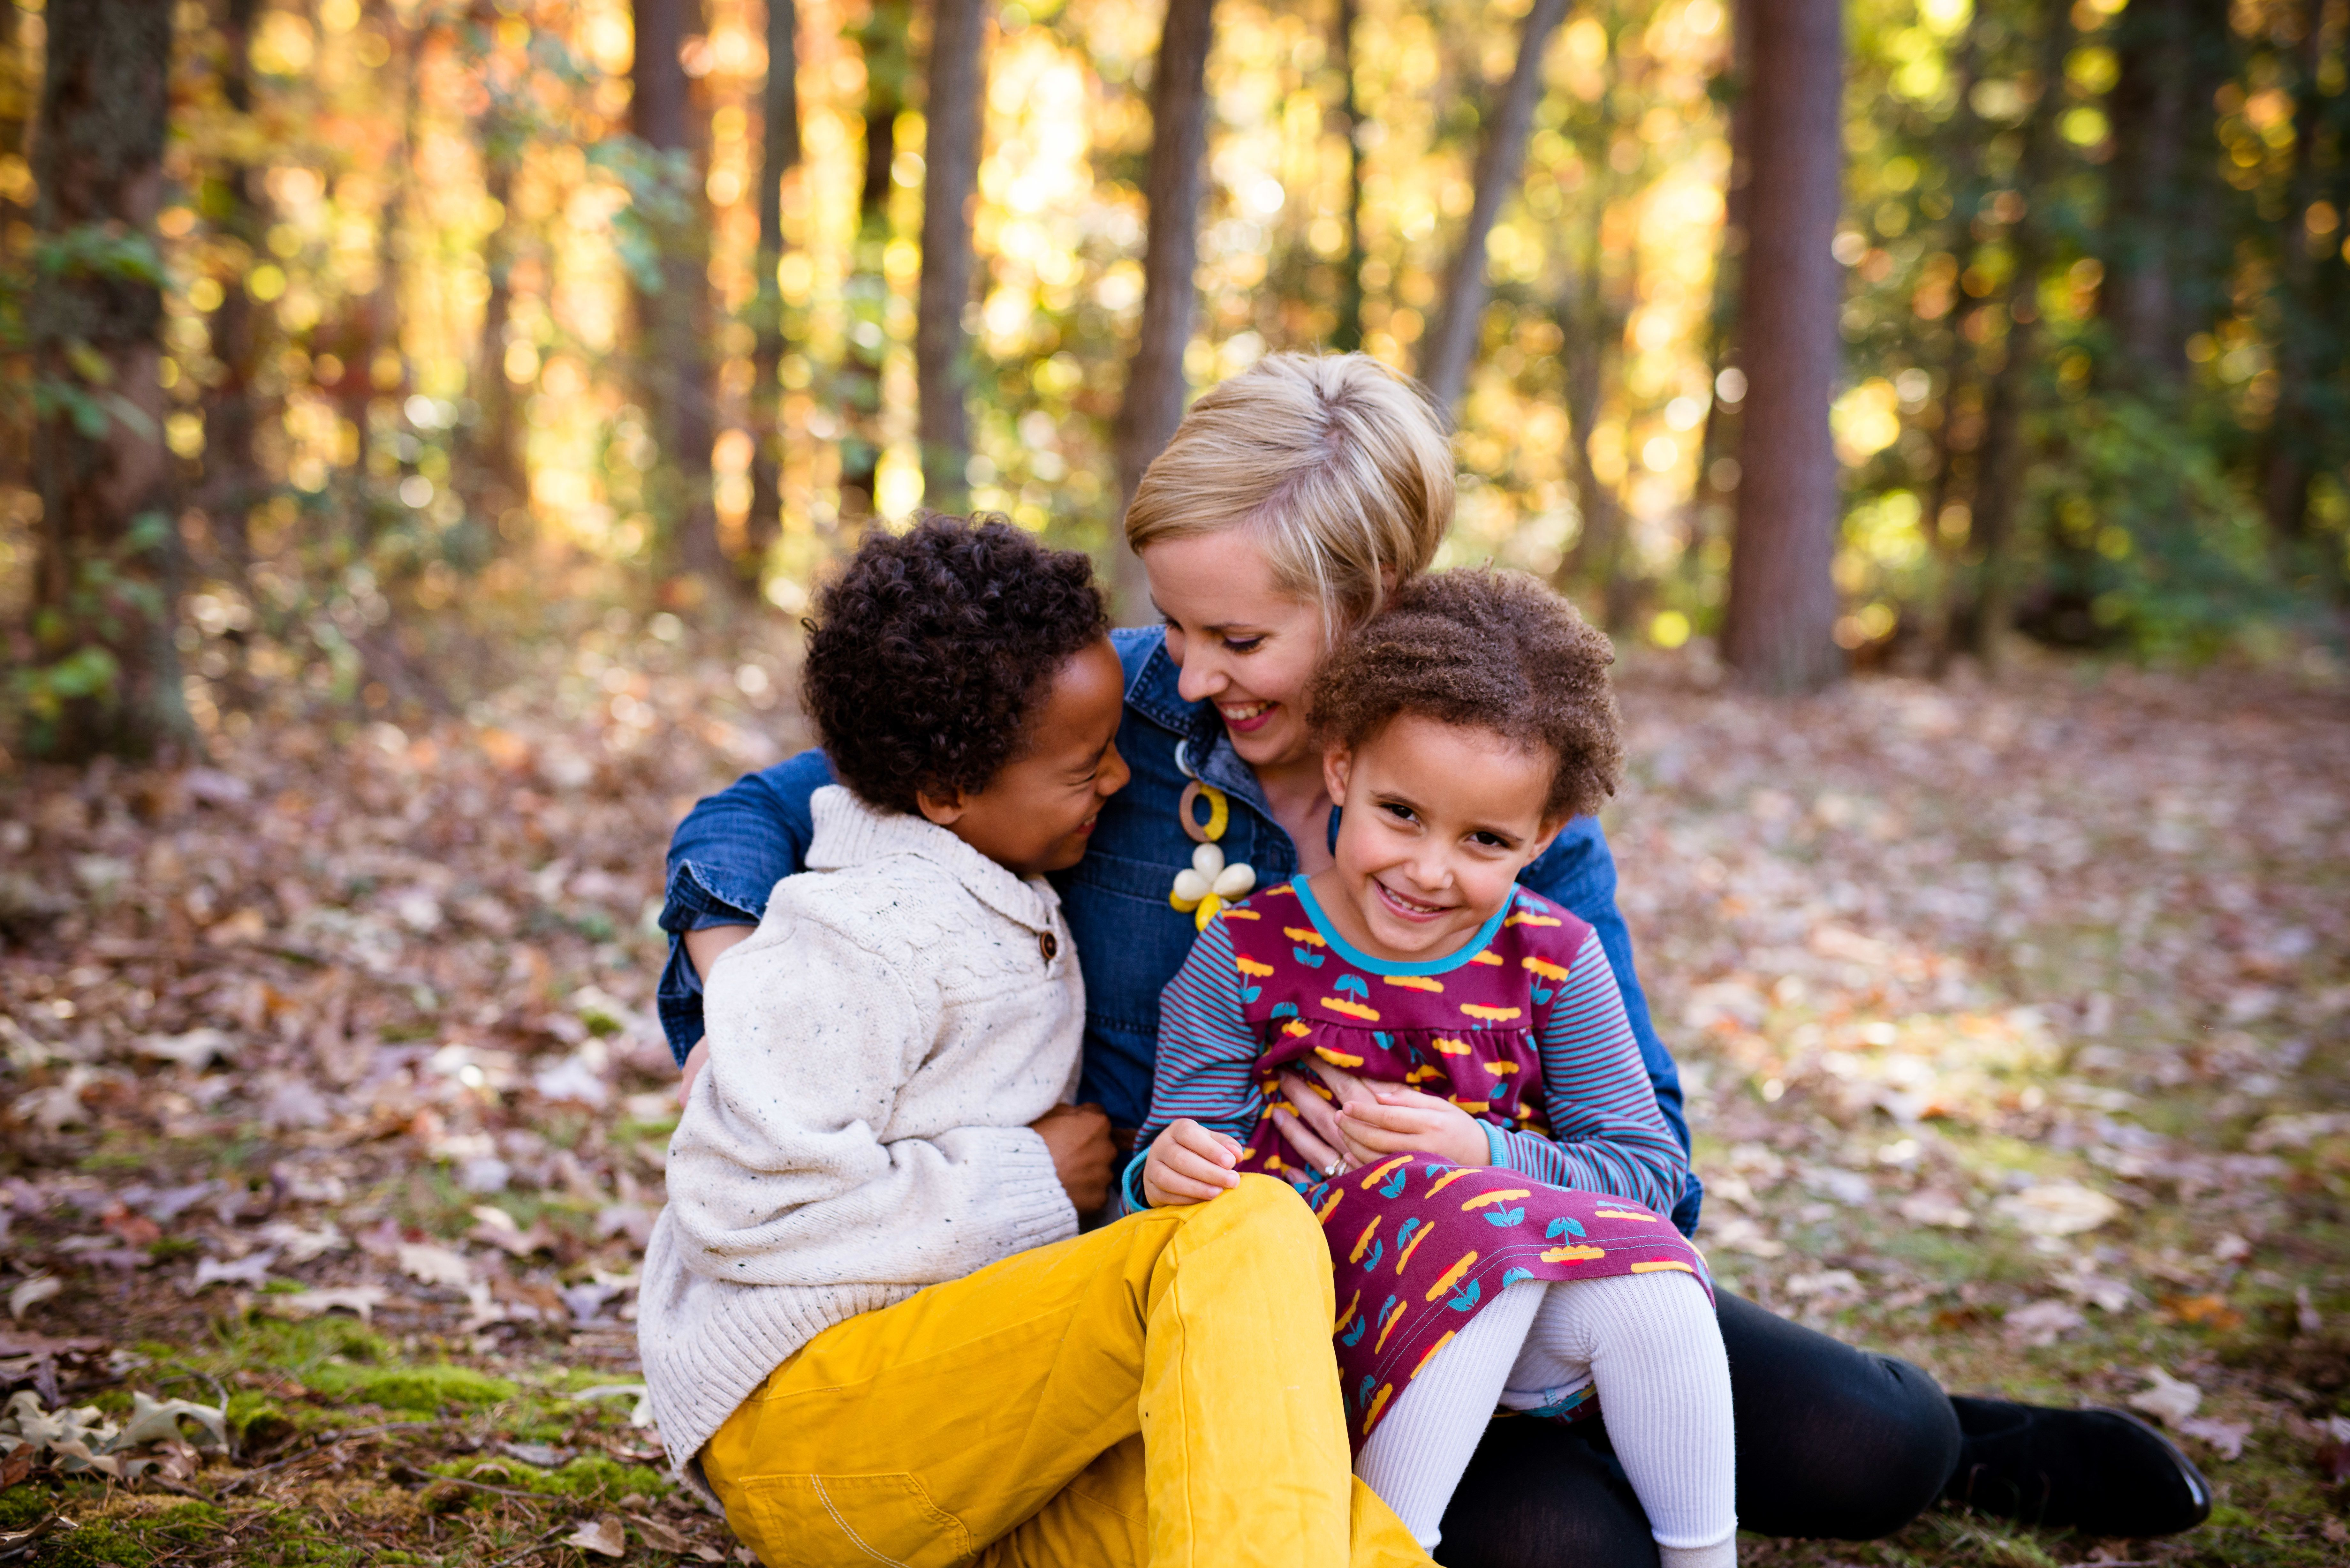 loveland single parents Also works with children who are beyond their parent's control,  loveland, co 80537 (970) 669  is to assist low-income, single parents in their efforts to build.